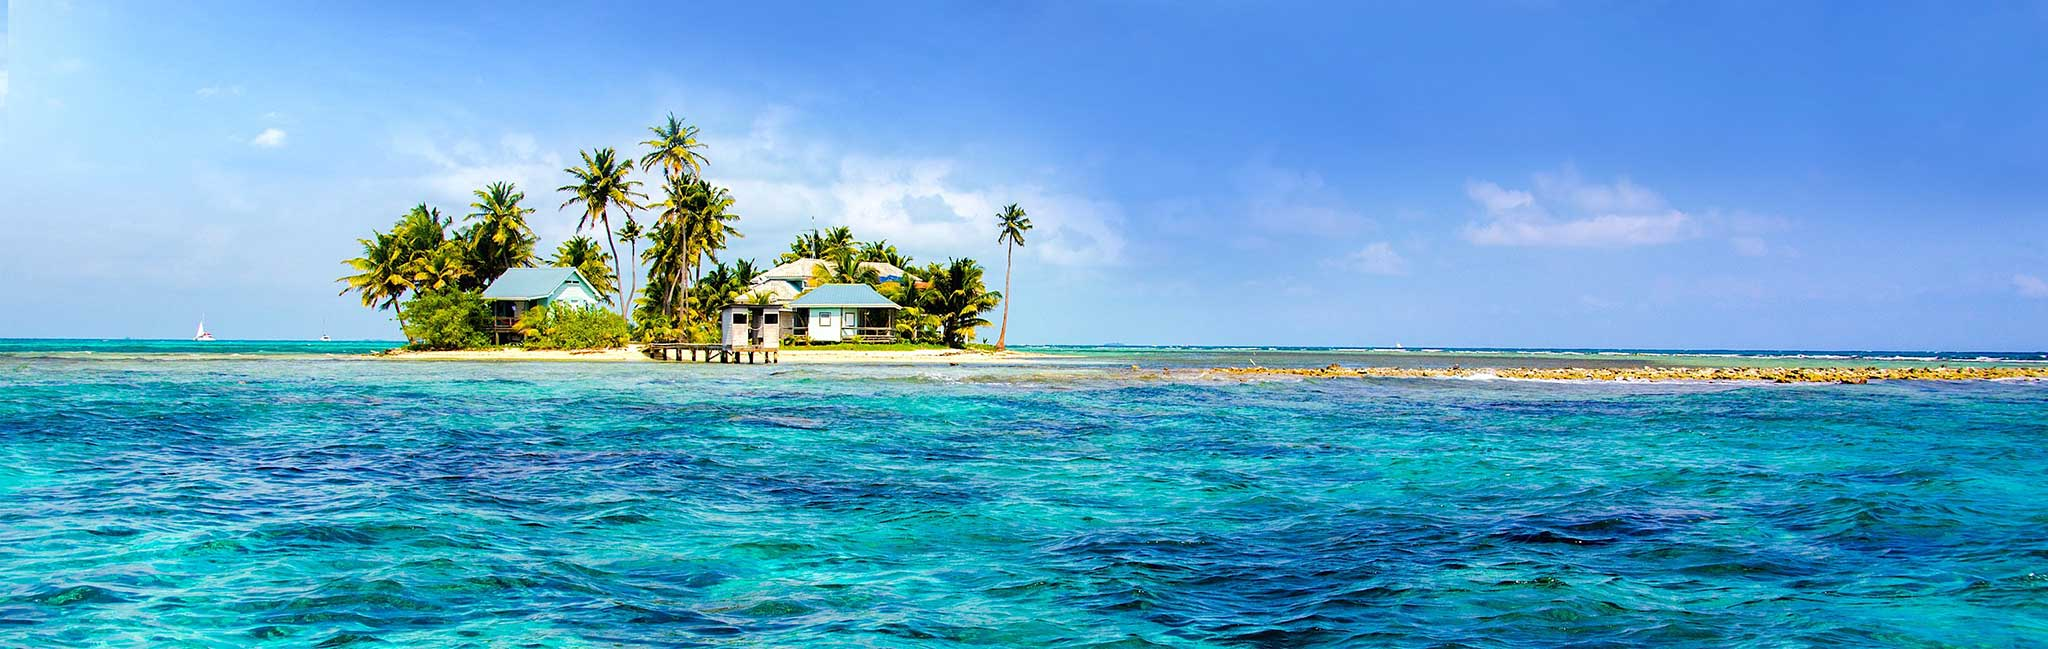 Belize Tour - Tranquil Beach